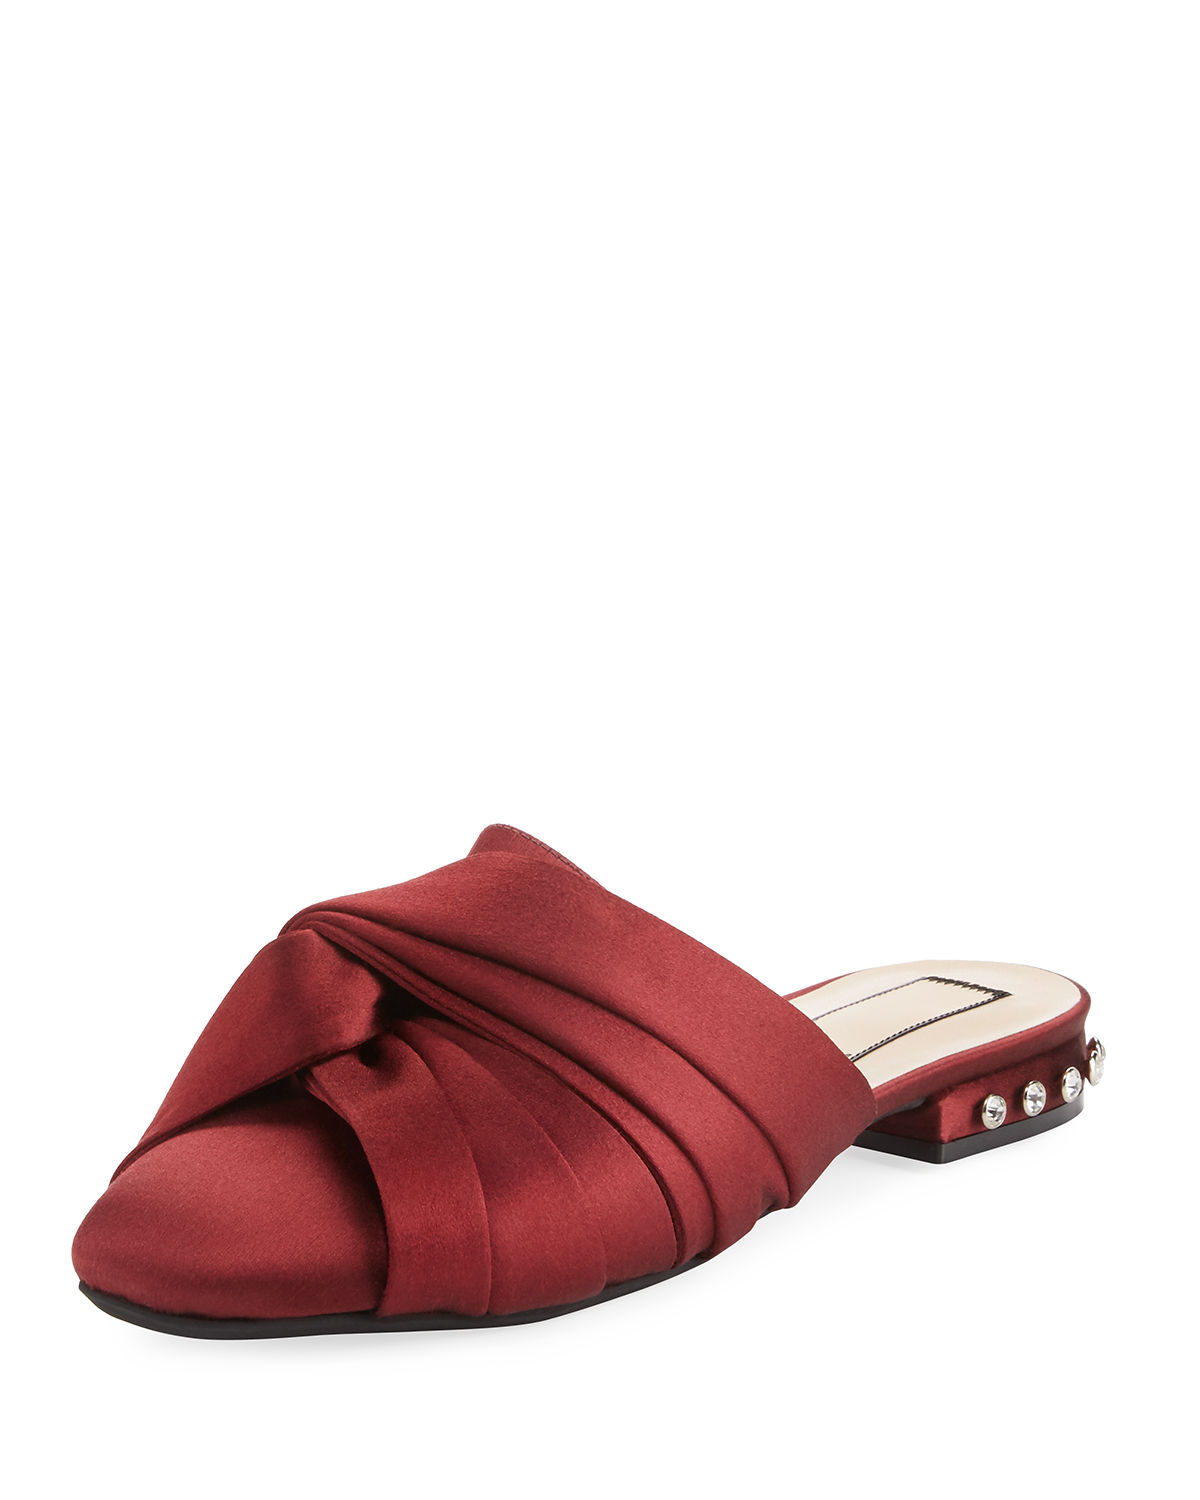 Satin Knotted Flat Mule